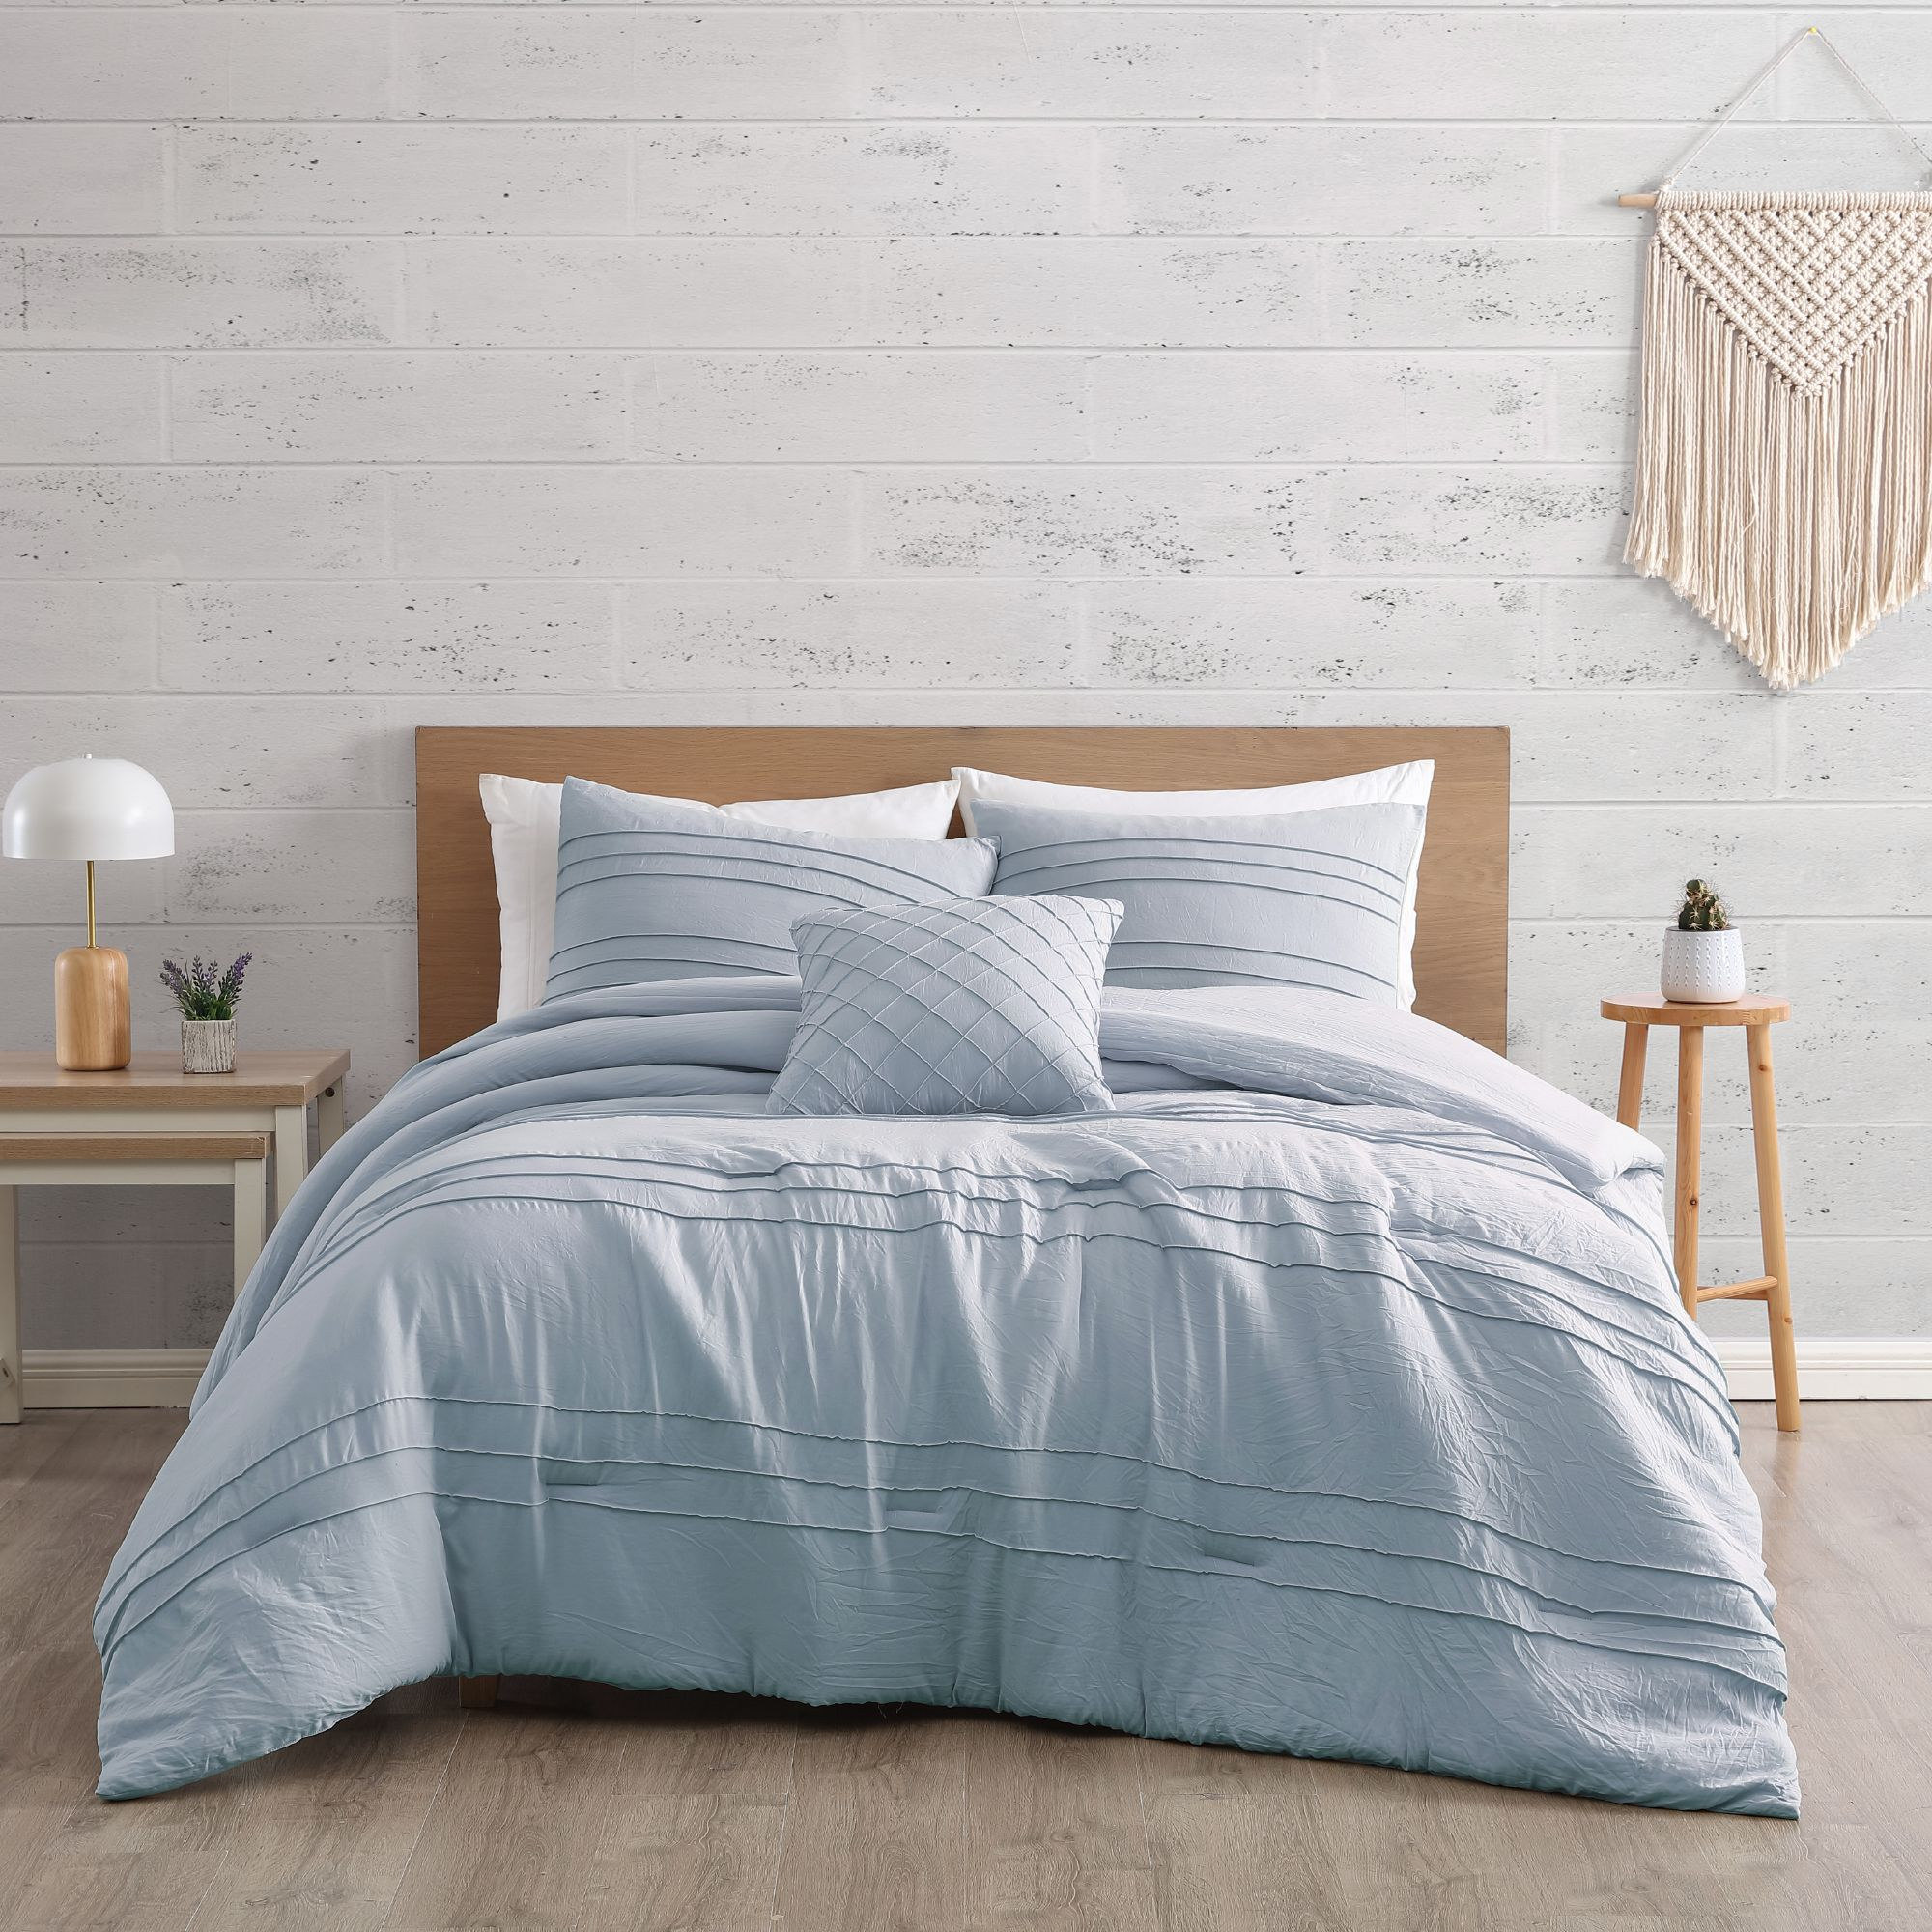 Taylor Blue - 4 Pieces Comforter Set $85.00